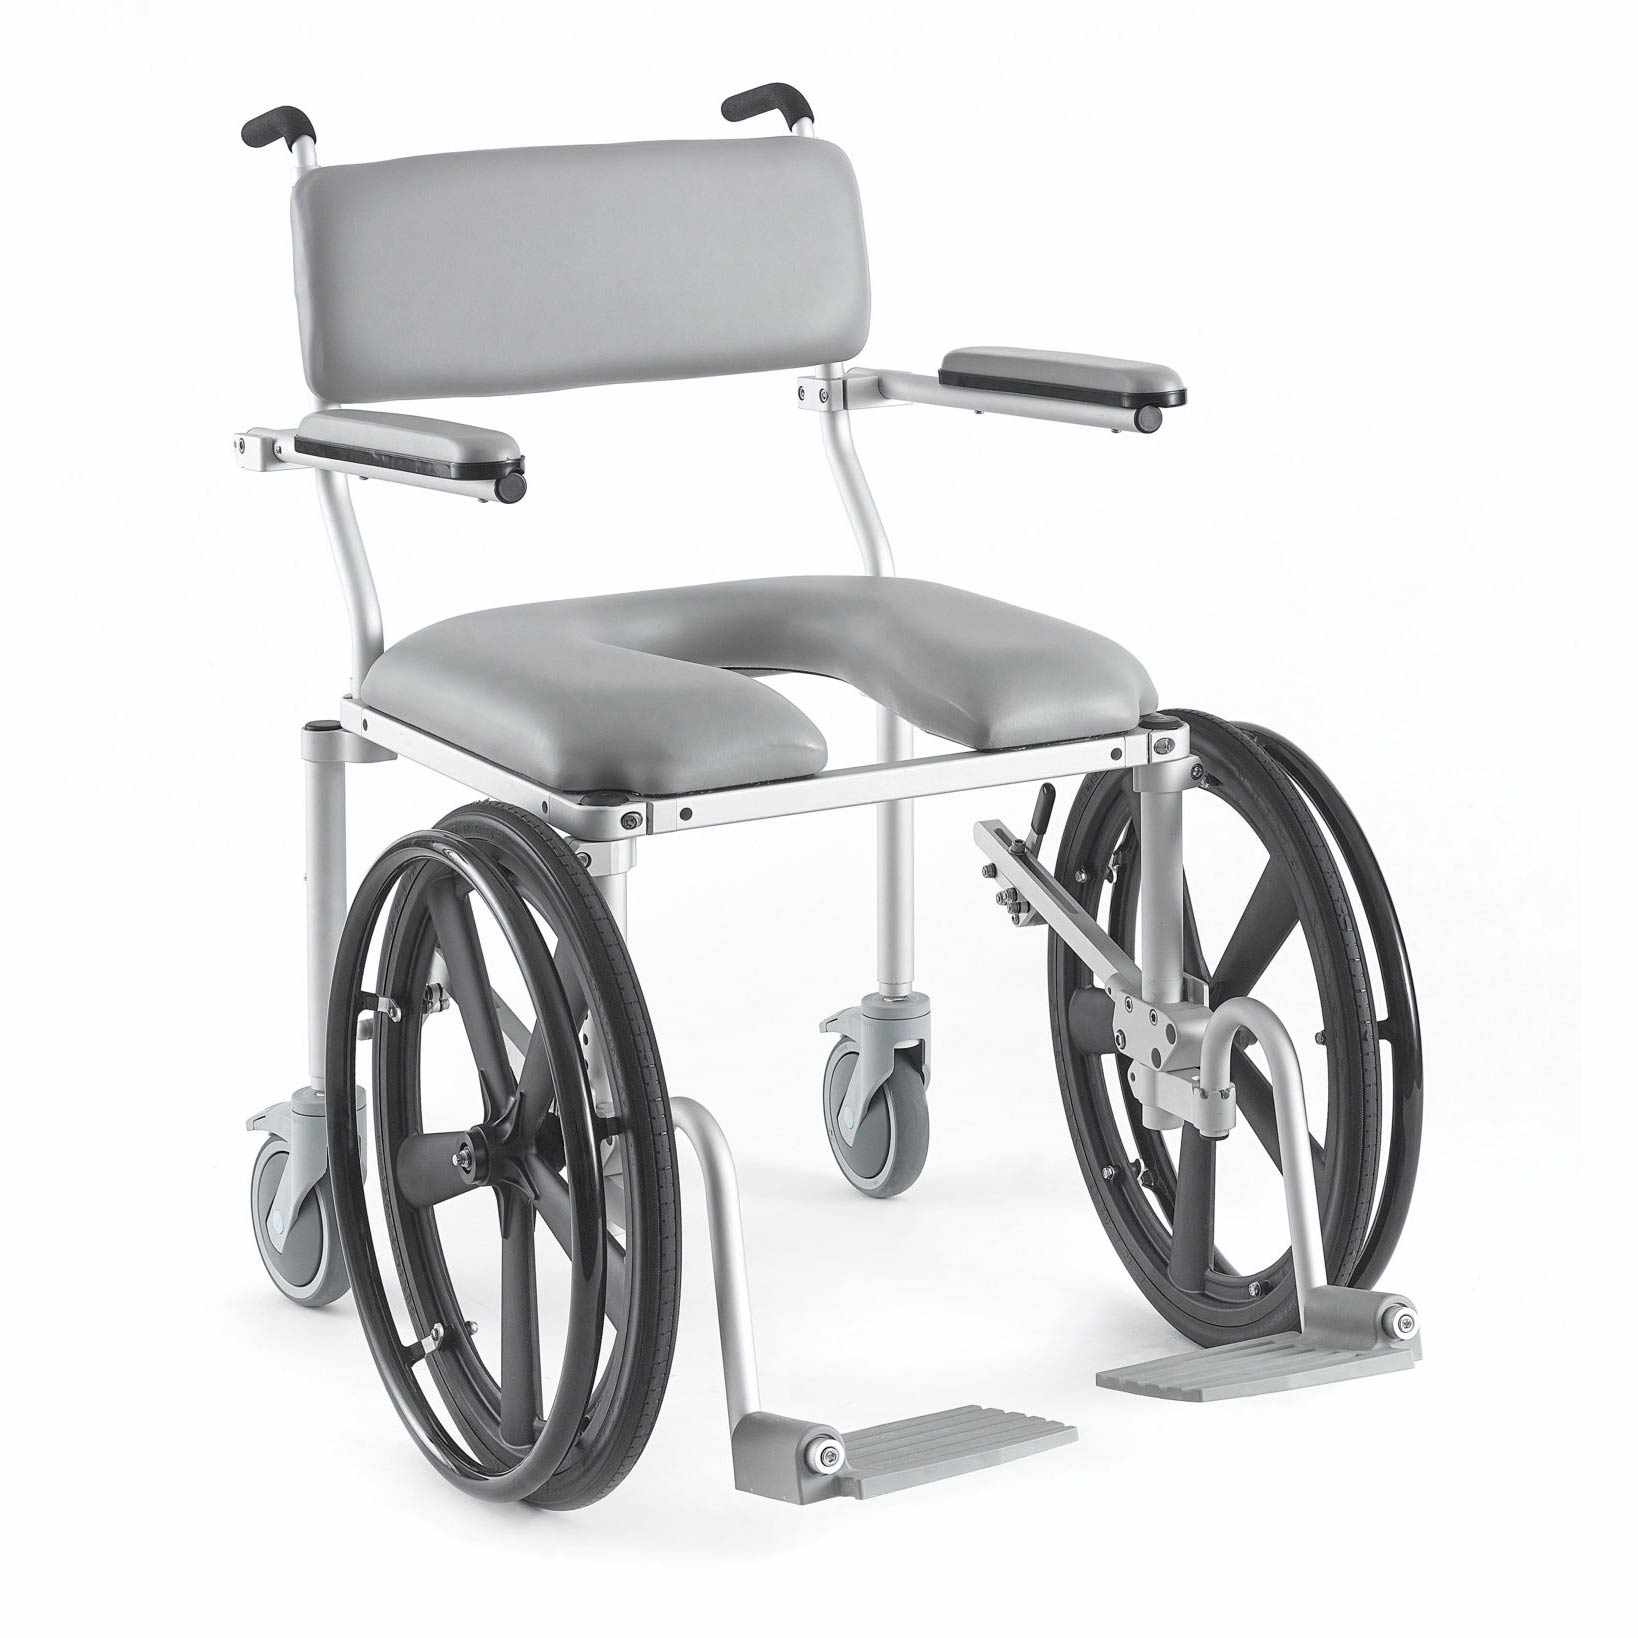 Nuprodx 4220Rx Roll-In Shower Commode Chair   Medicaleshop